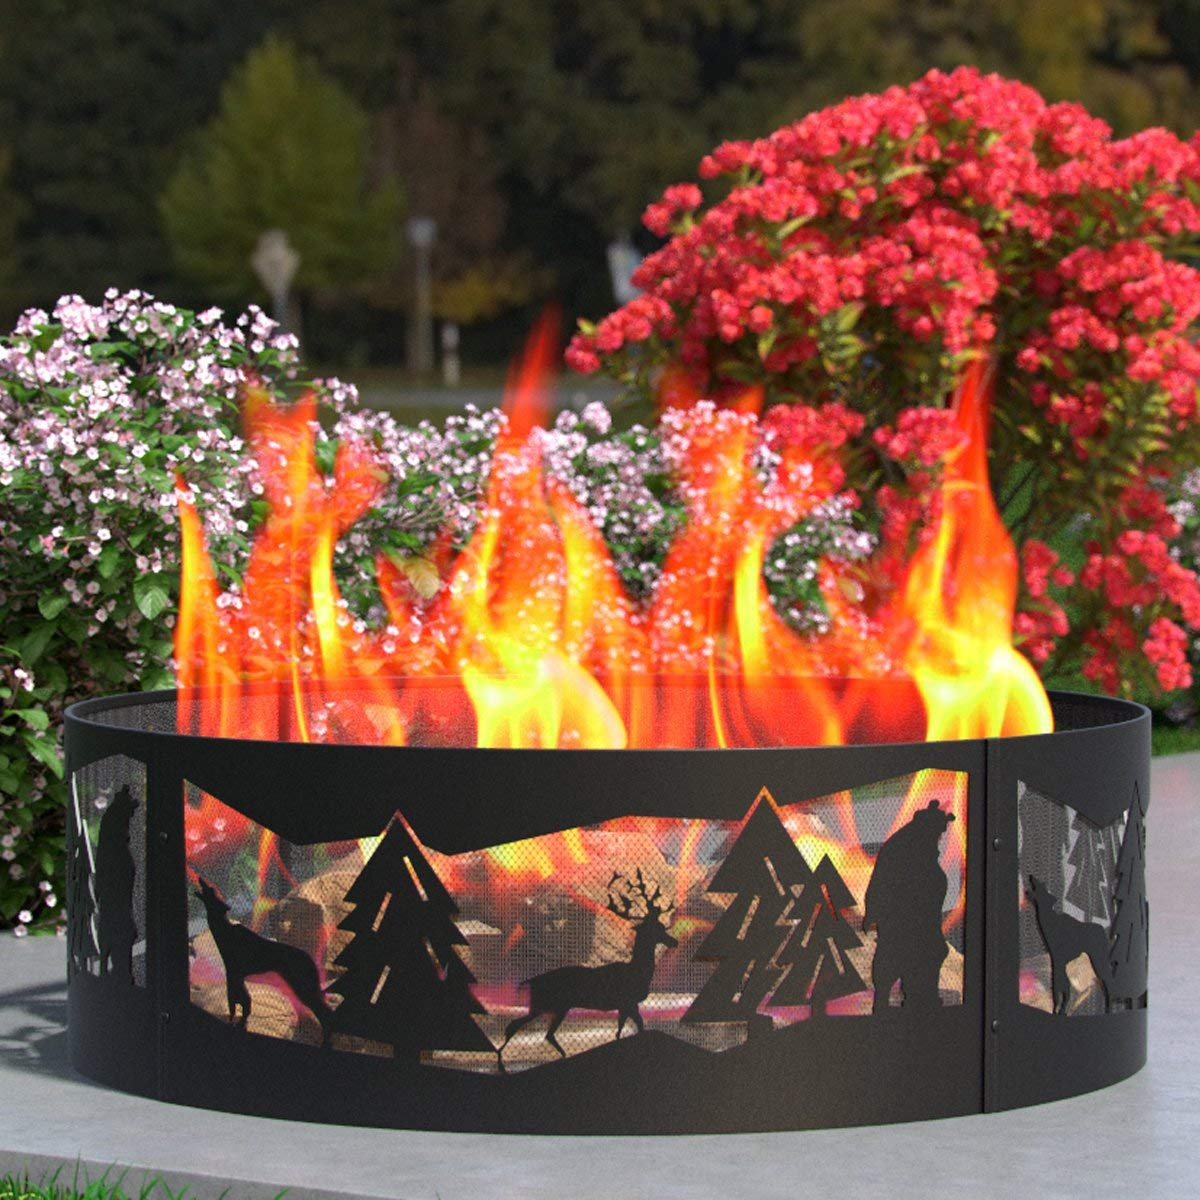 Regal Flame Heavy Duty 38 Inch Backyard Garden Light Wood Fire Pit Fire Ring. for RV, Camping, and Outdoor Fireplace. Similar Firewood Patio Heater, Stove or Firebowl Without Propane (Wilderness)